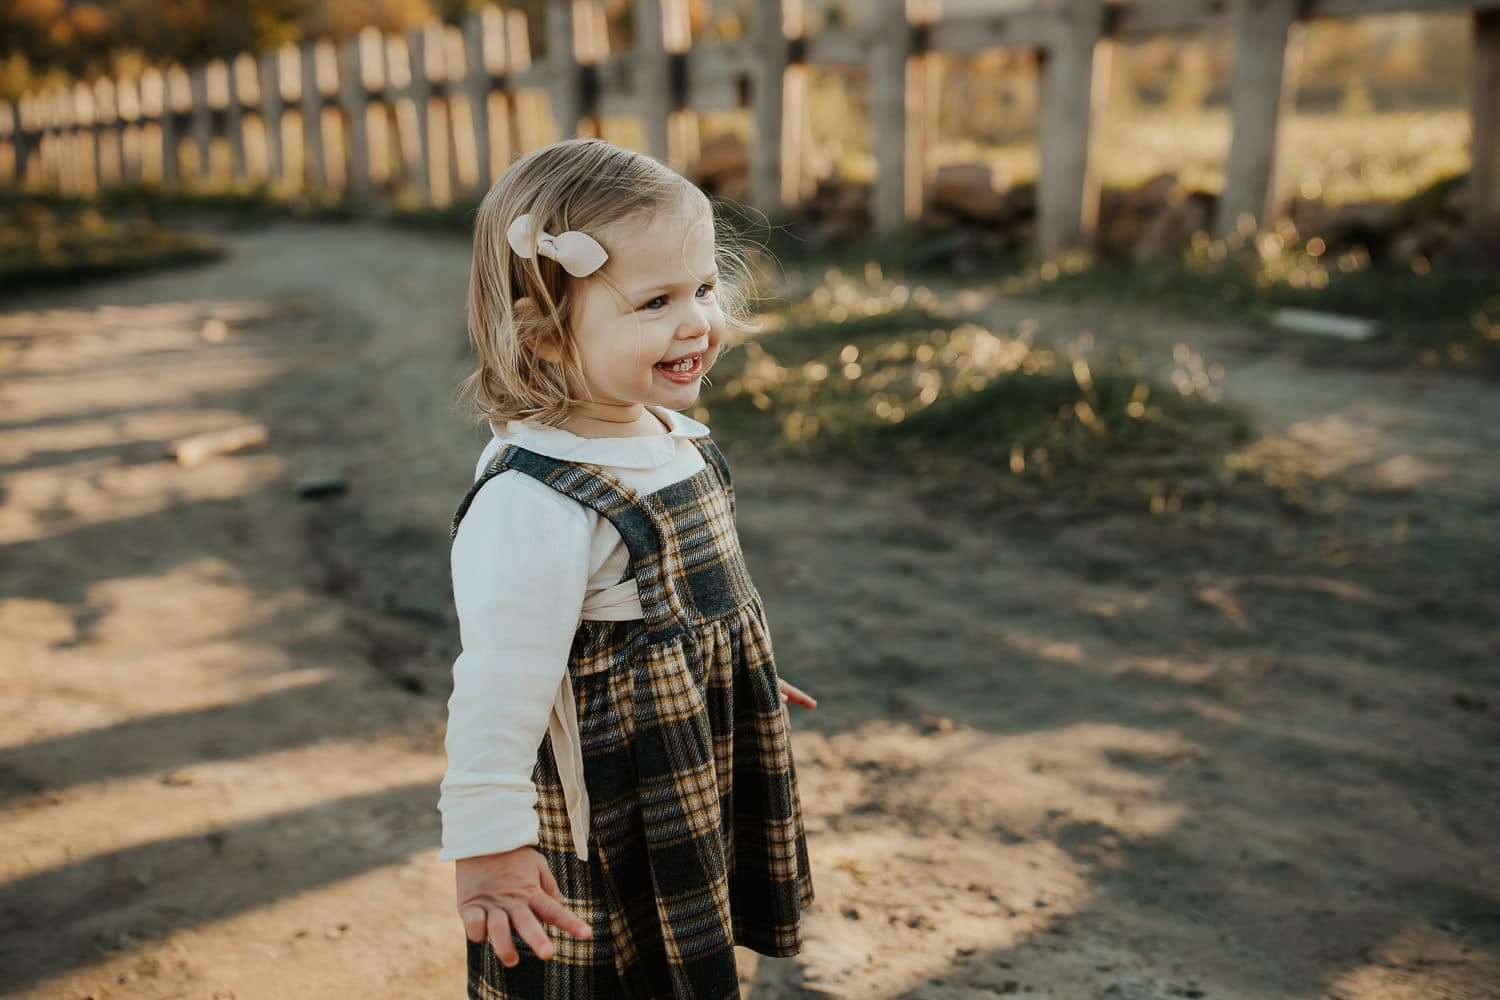 Adorable baby girl wearing plaid dress